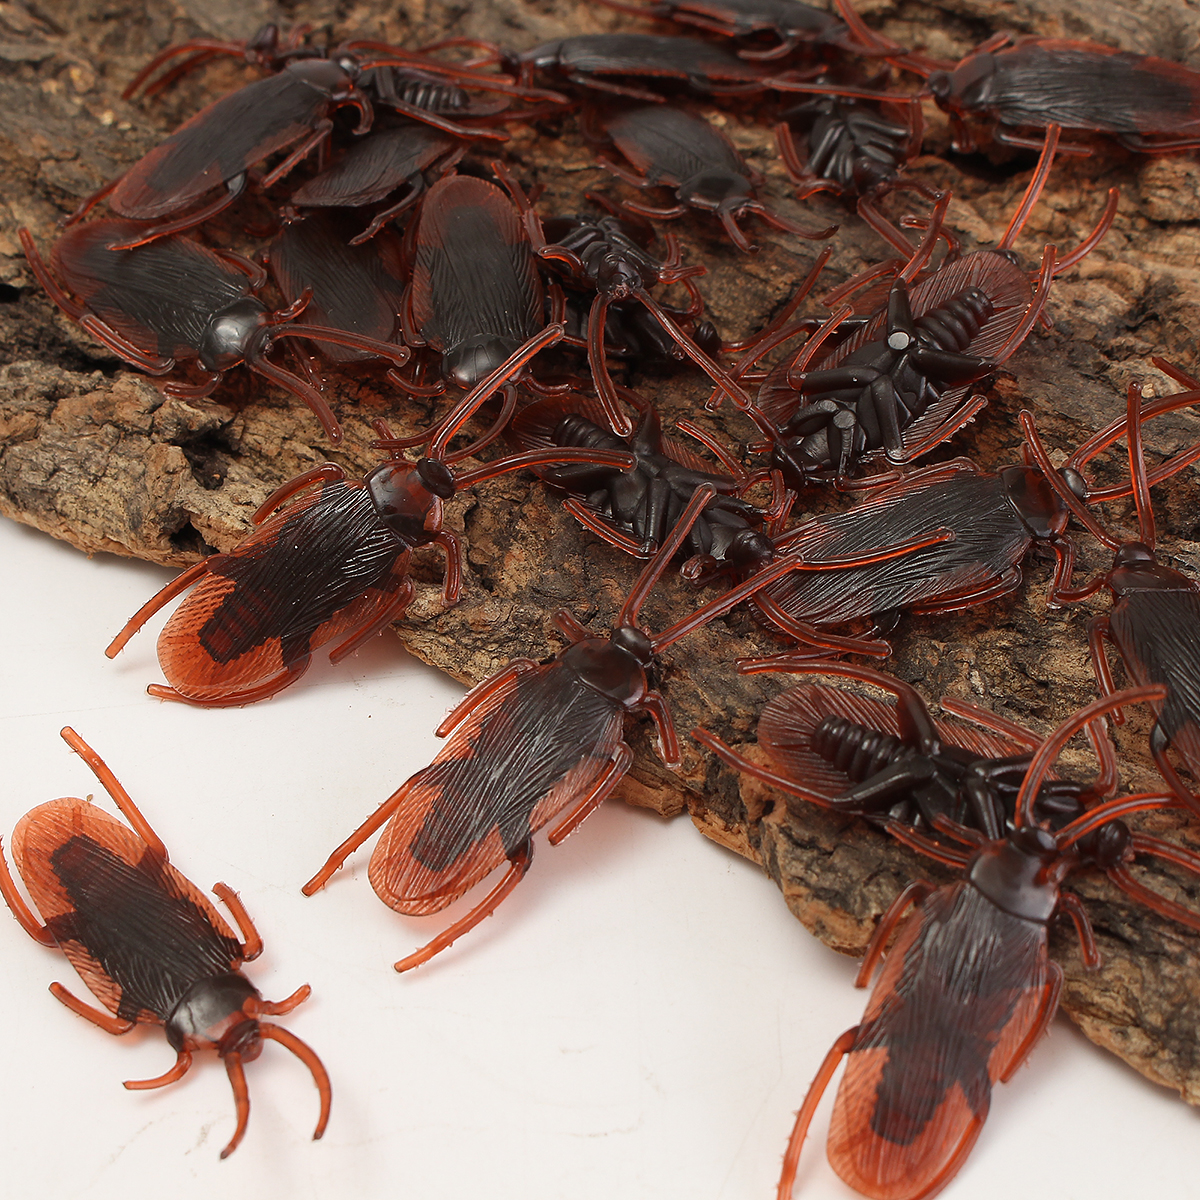 50Pcs Halloween Plastic Cockroaches Rubber Toy Joke Prop Realistic Decoration - Photo: 8